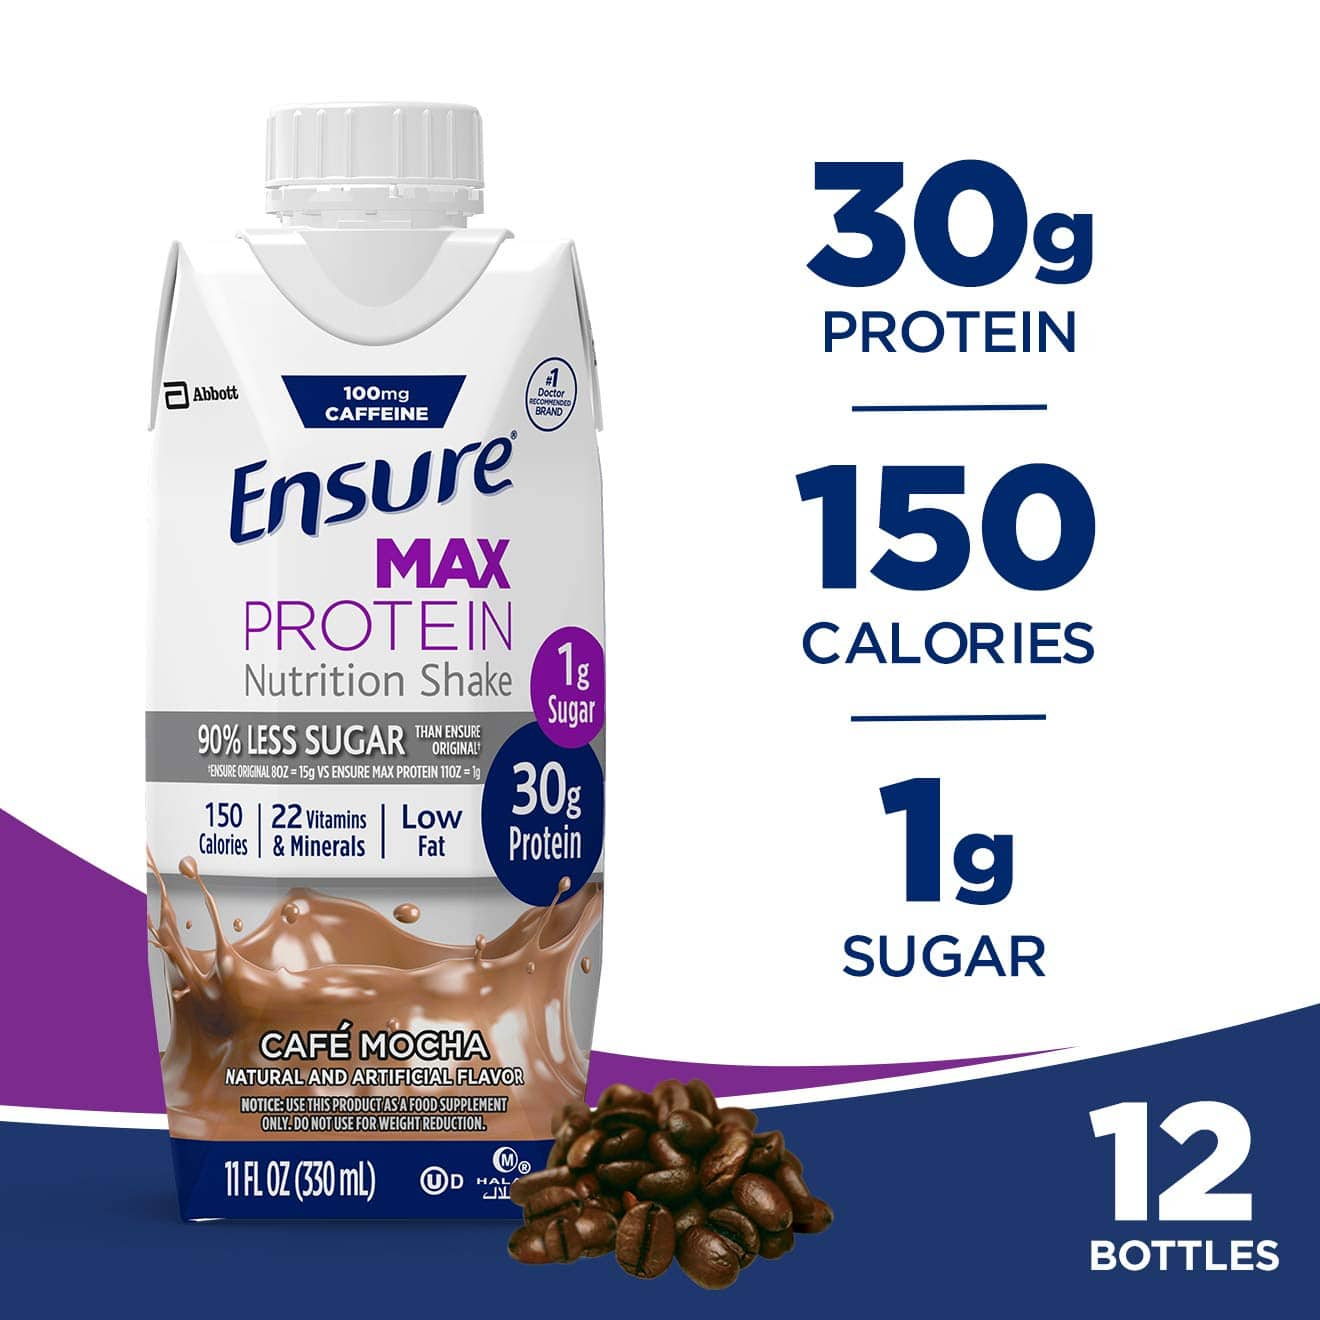 12-Count 11-Oz Ensure Max 30g Protein Nutritional Shake (Various flavors) from $10.7 w/ S&S + Free s/h